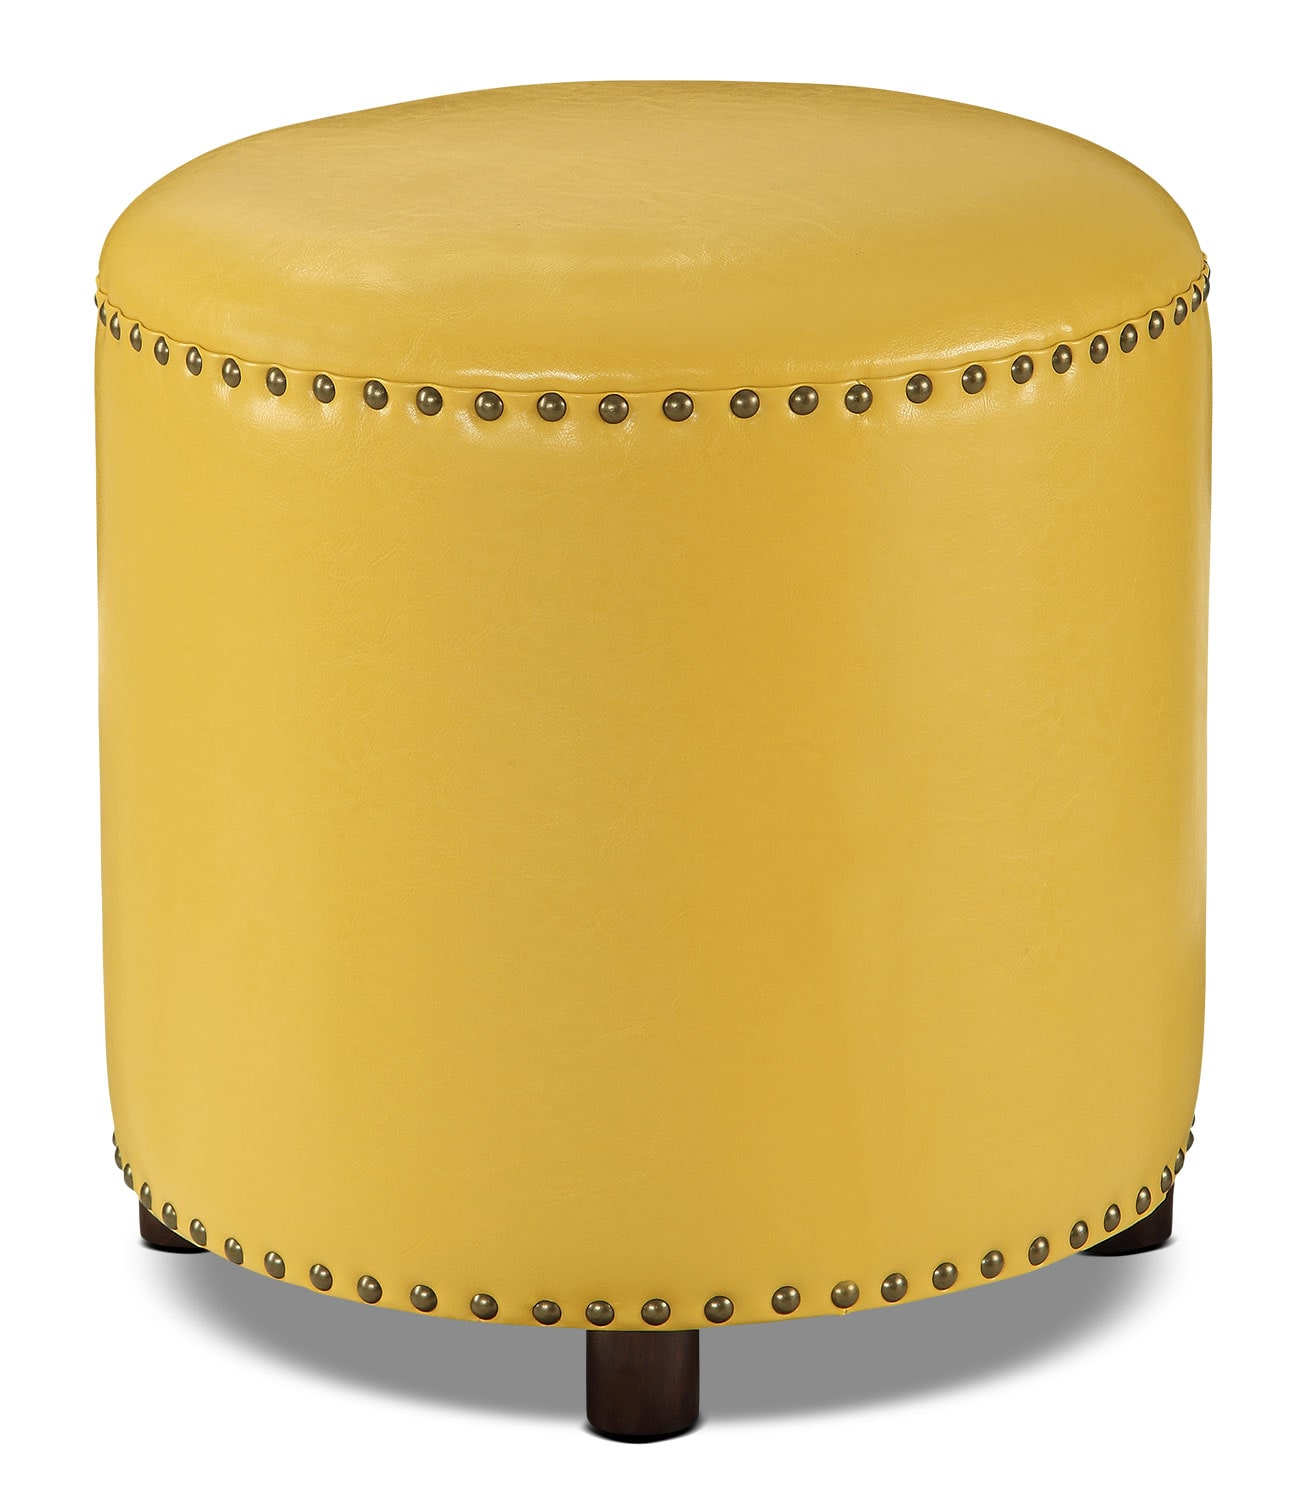 Living Room Furniture - Chilton Ottoman – Mustard Yellow